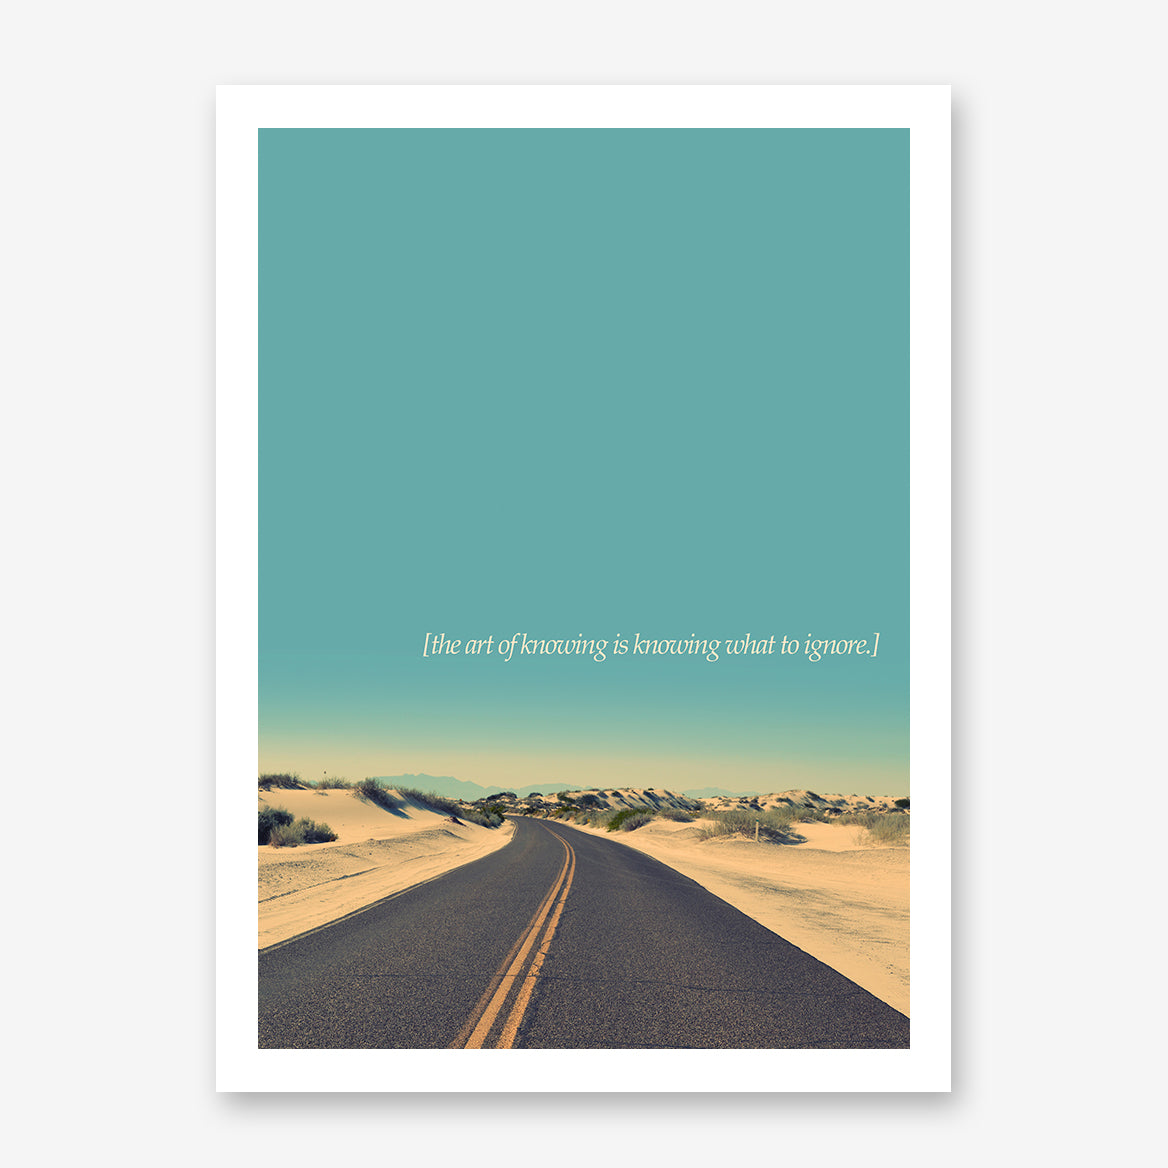 Photography poster print by Kubistika, with a desert road, teal sky and quote 'the art of knowing is knowing what to ignore'.